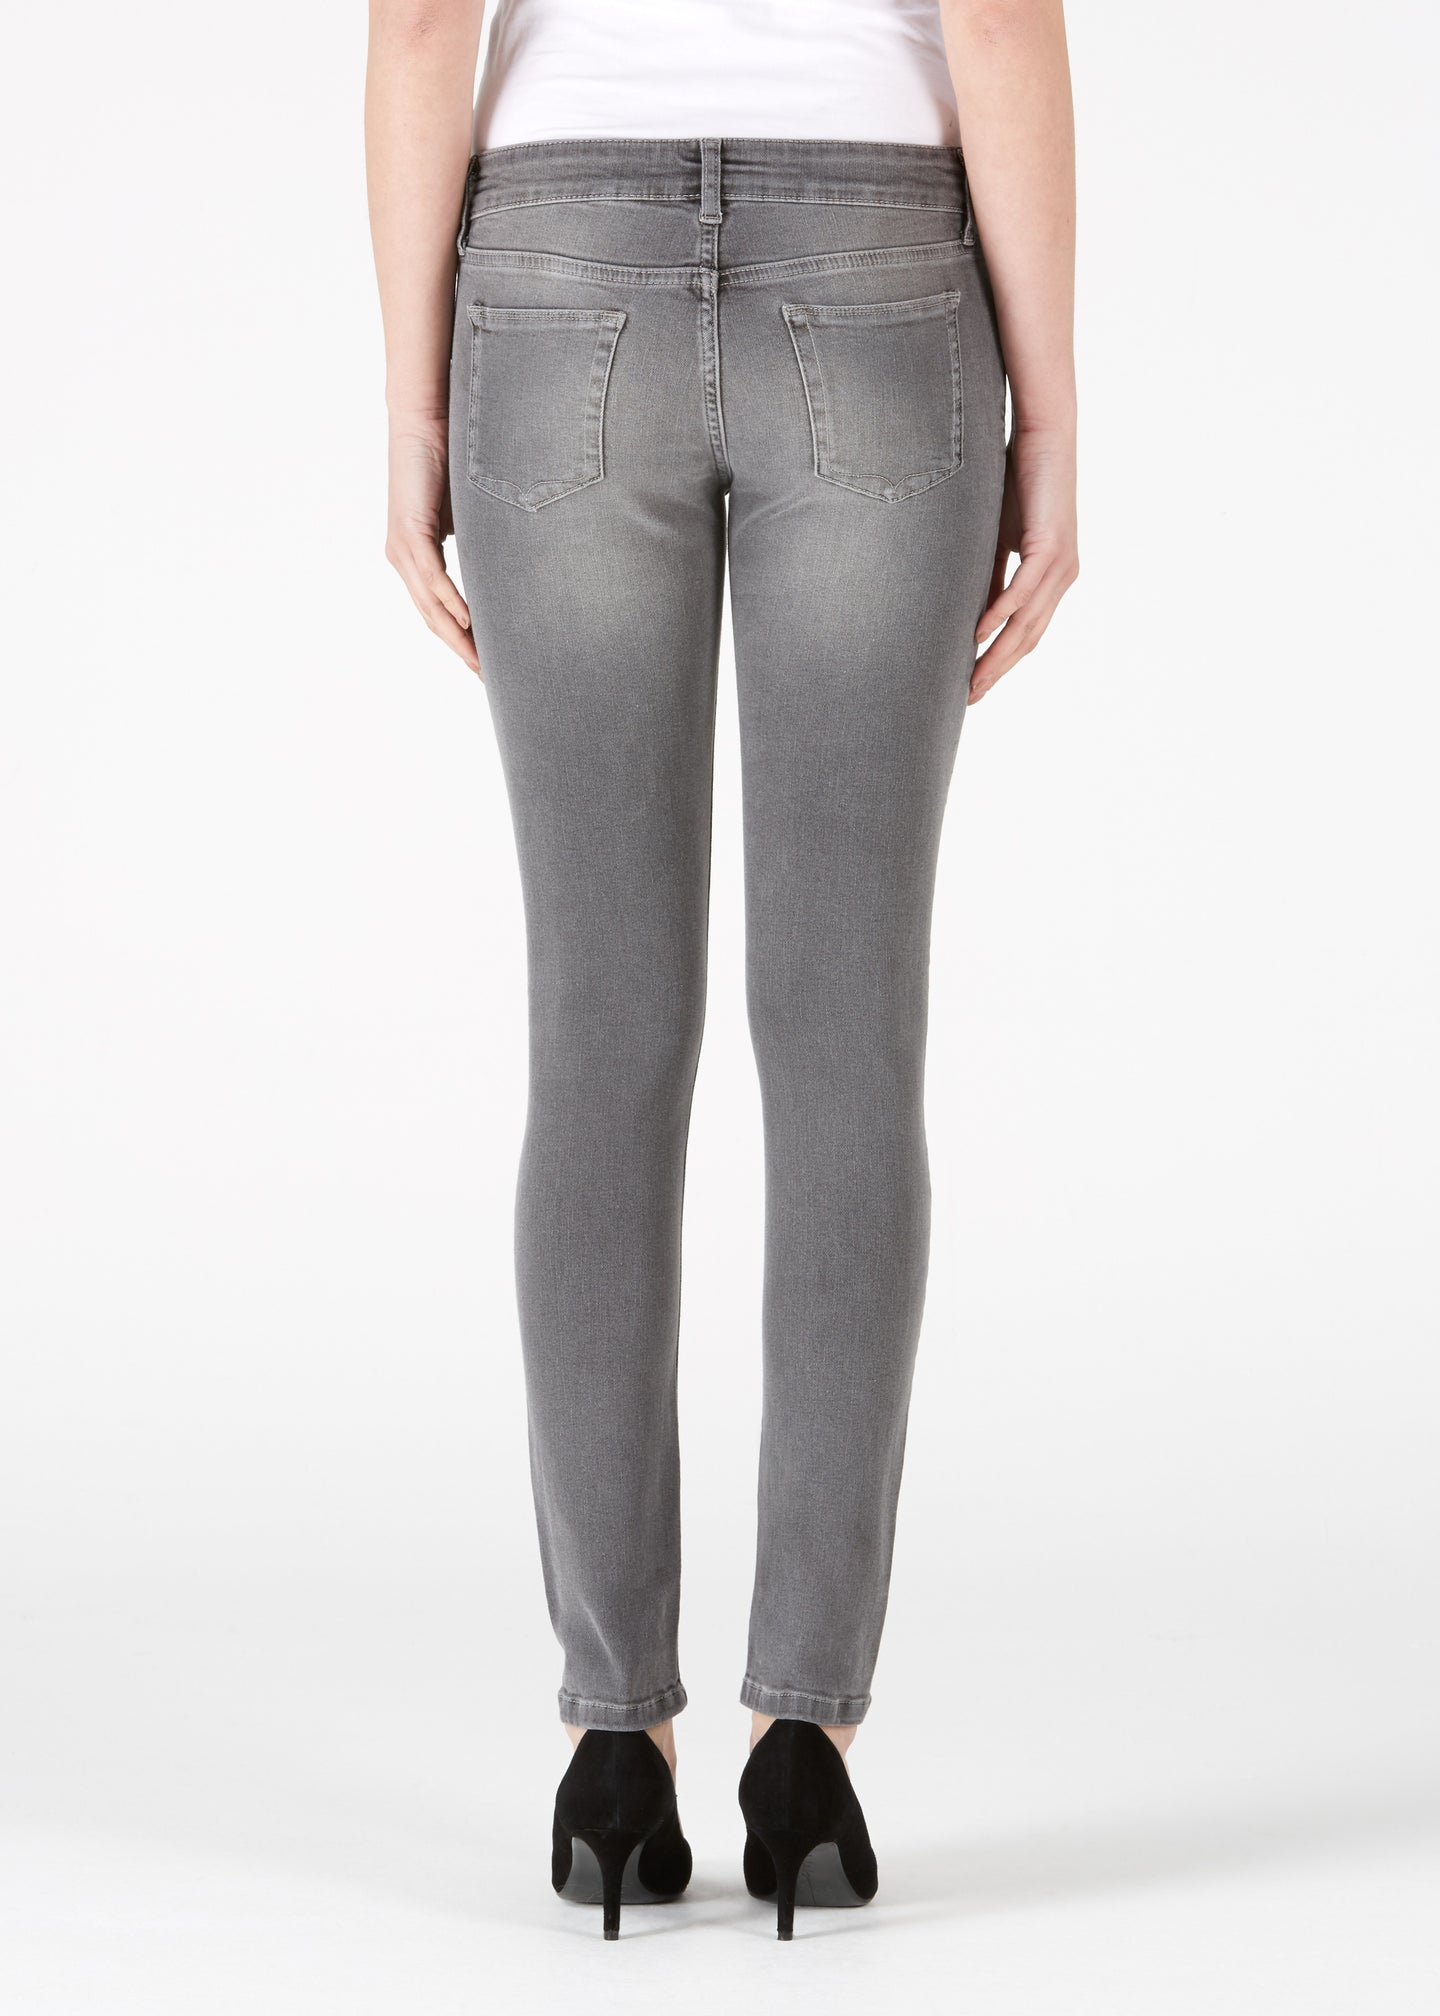 Honor Low Rise Ankle Skinny Jeans - Foggy London